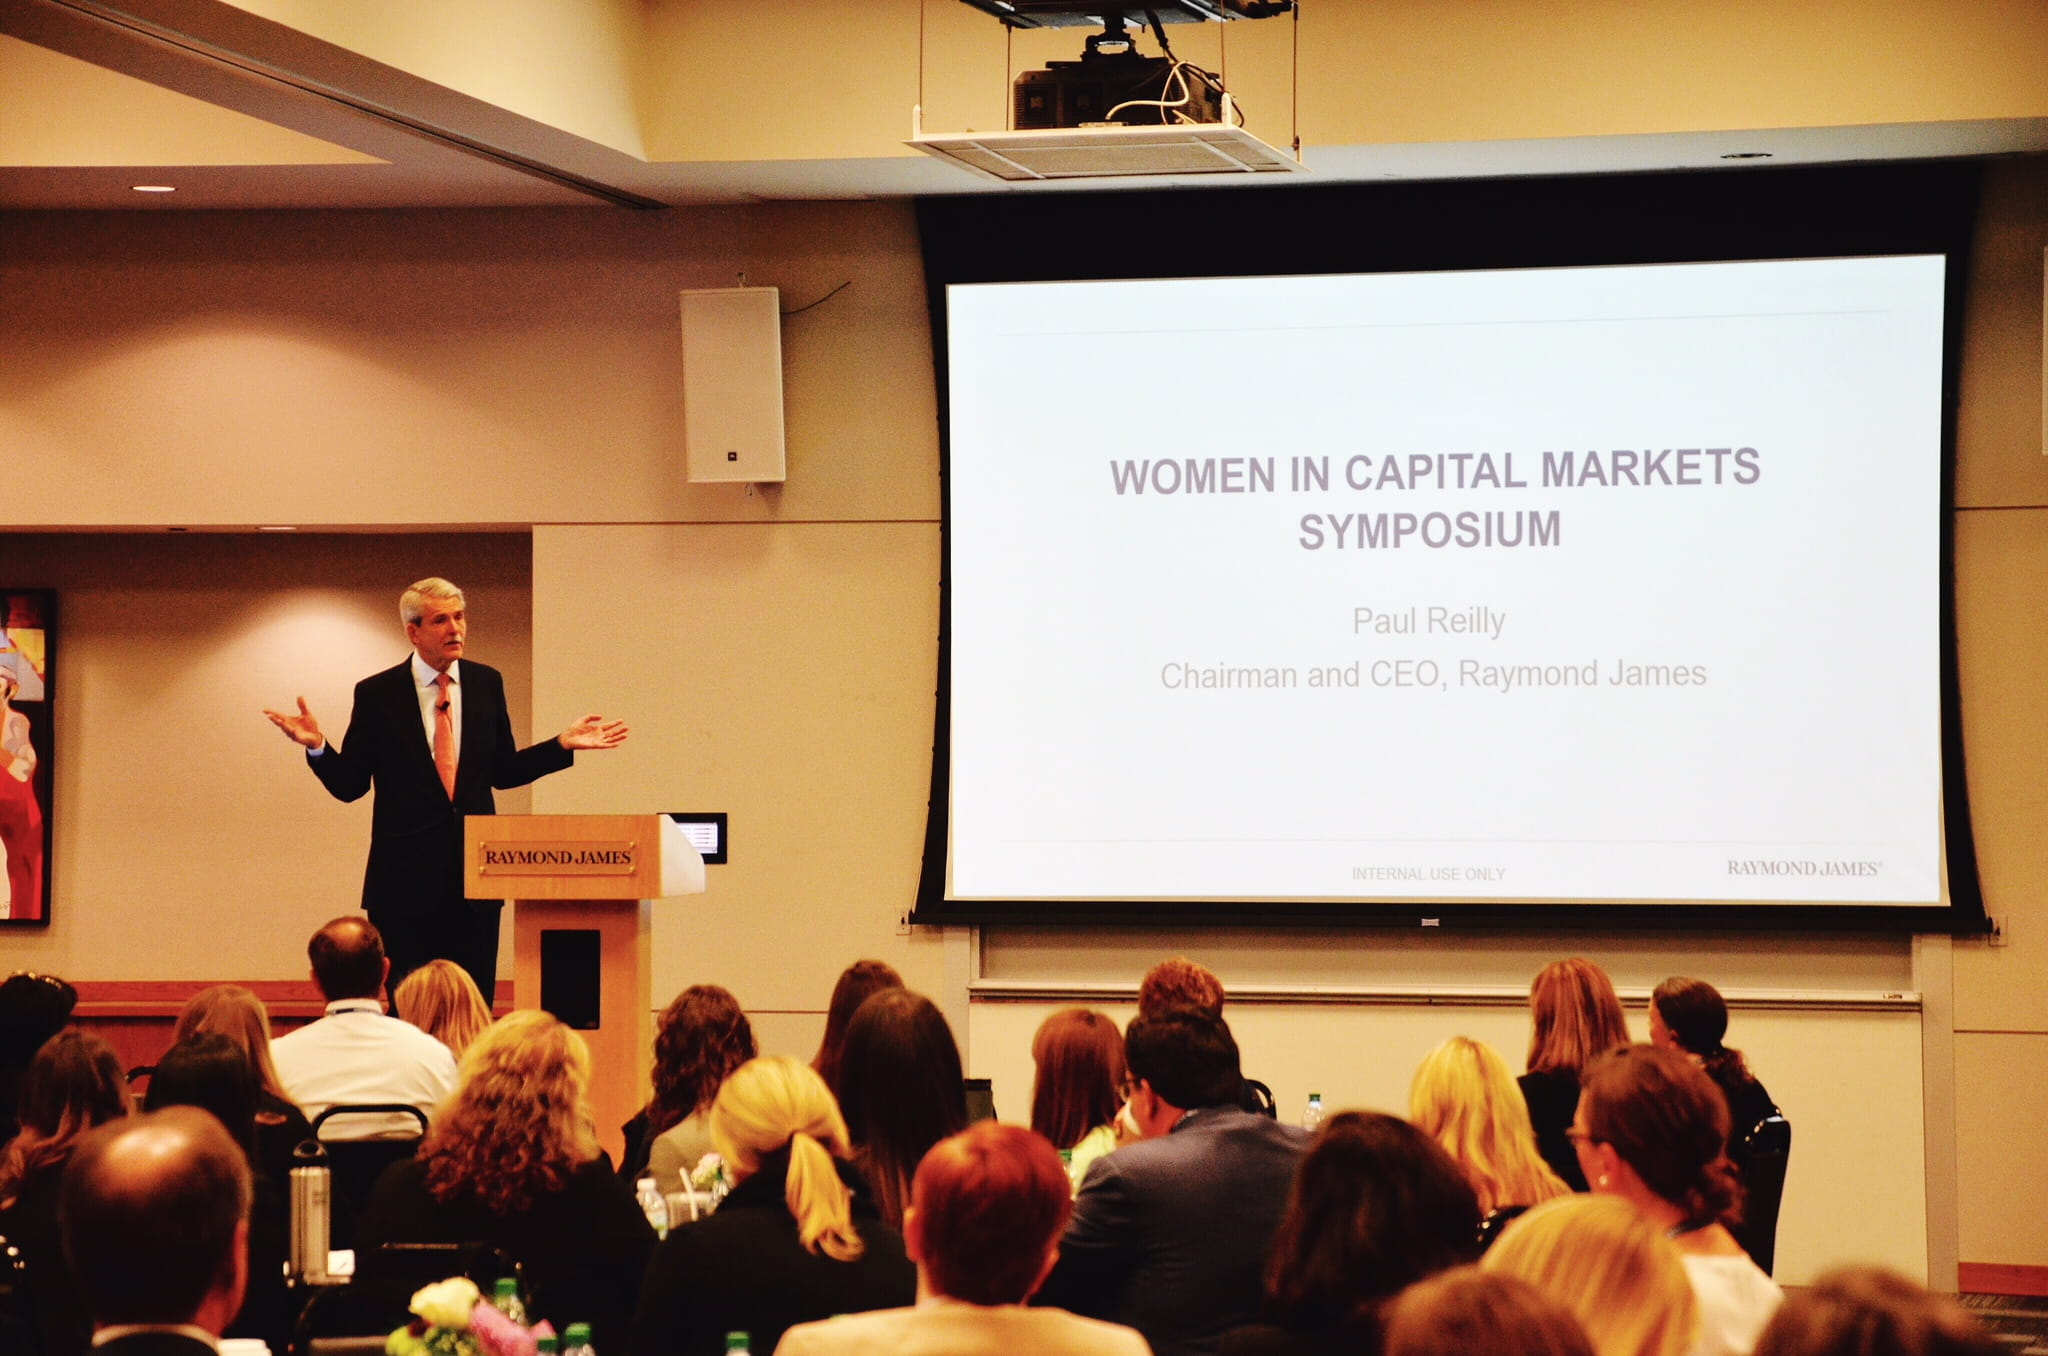 CEO and Chairman Paul Reilly makes opening comments at the Women in Capital Markets Symposium.